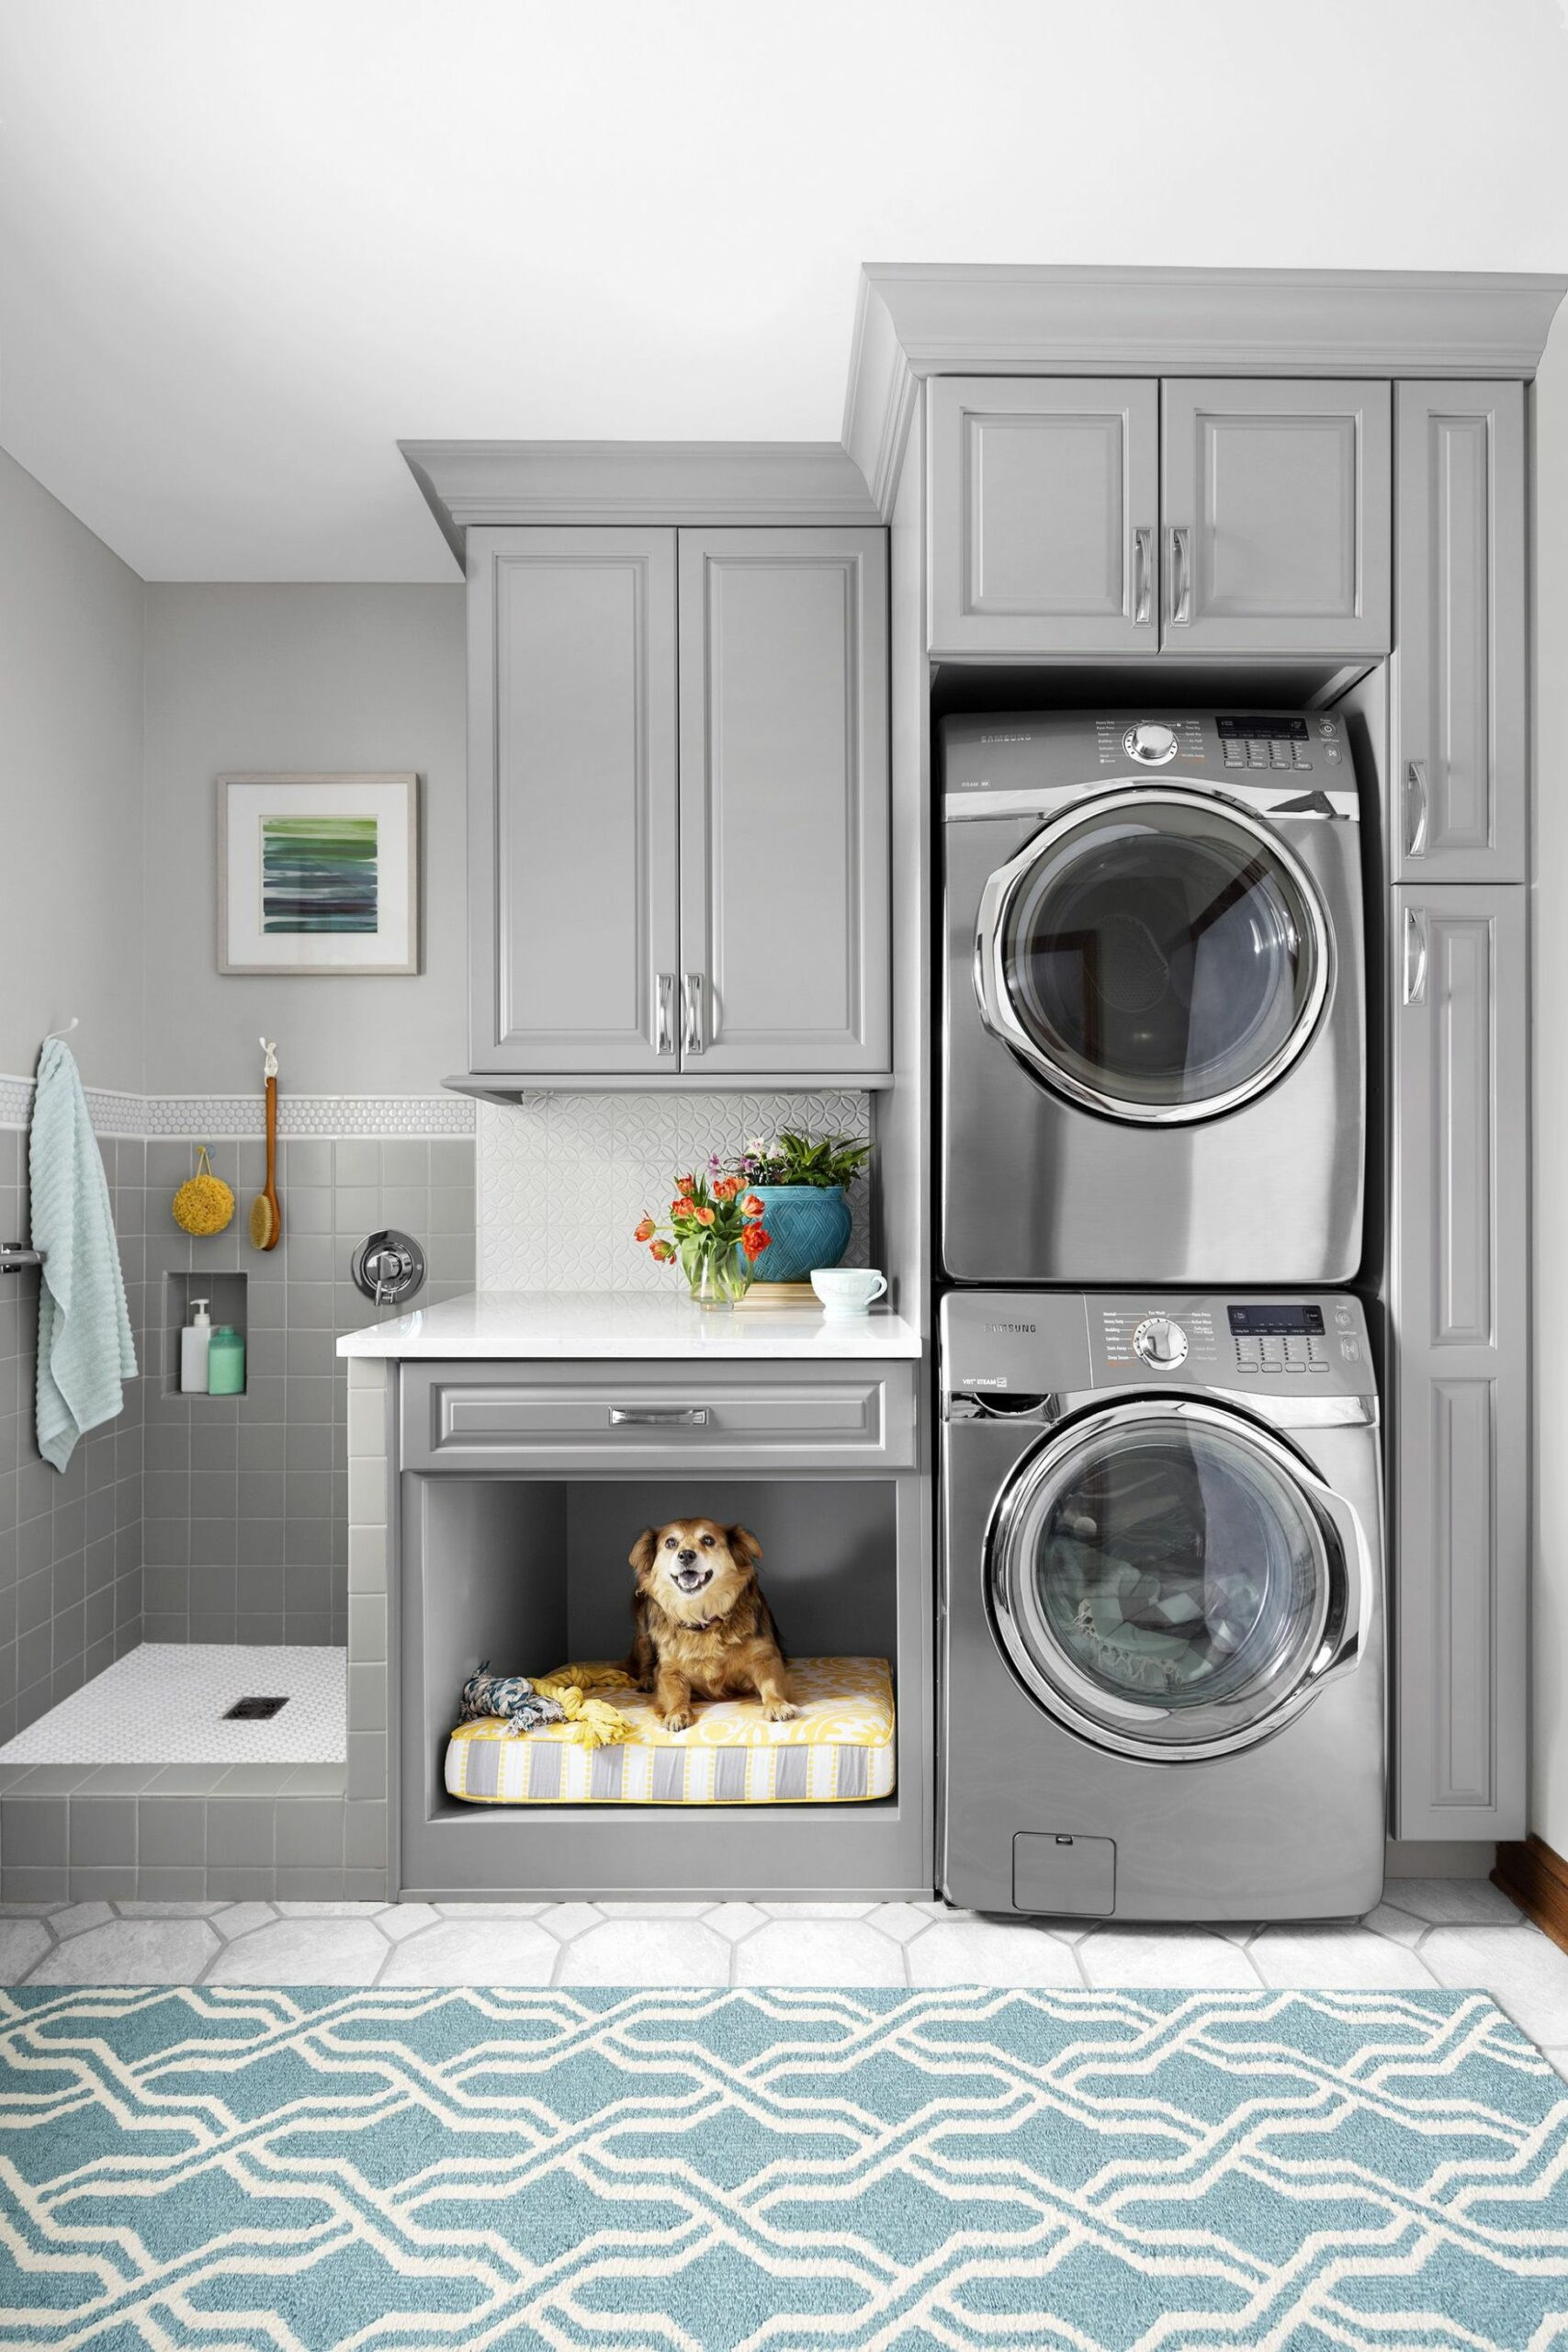 Laundry Room for Vertical Spaces | Laundry room layouts, Laundry ..